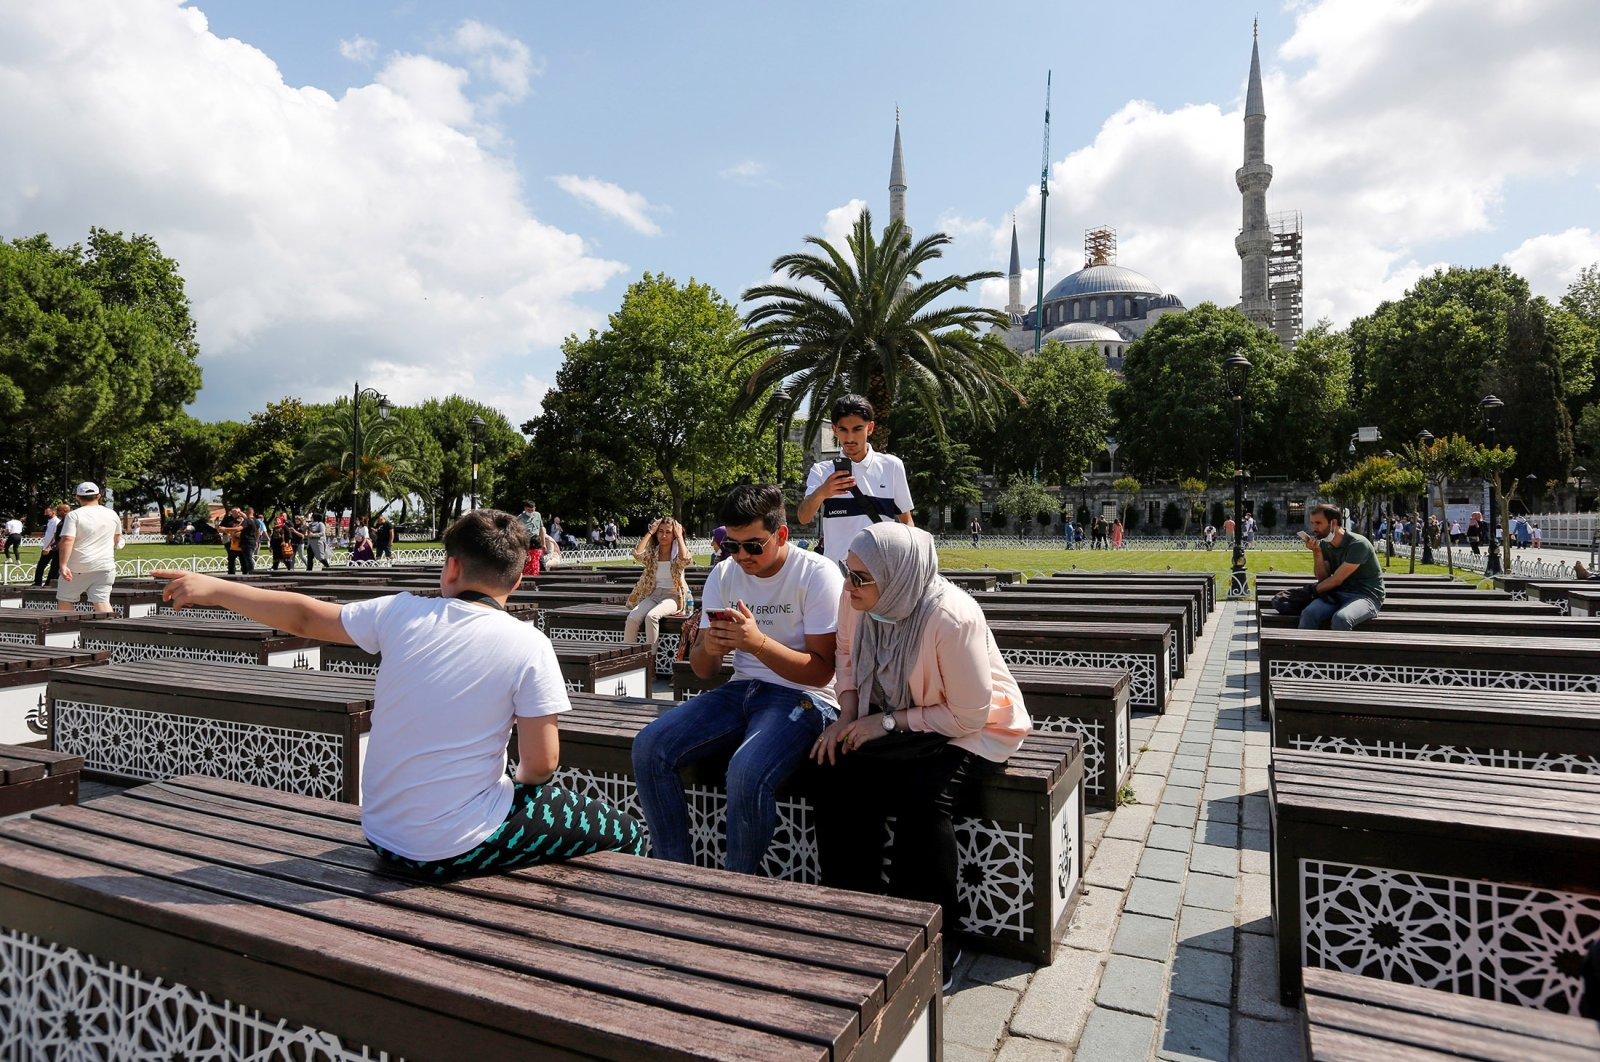 Foreign tourists pause at Sultanahmet Square as they visit the old part of Istanbul, Turkey, July 8, 2021. (Reuters Photo)